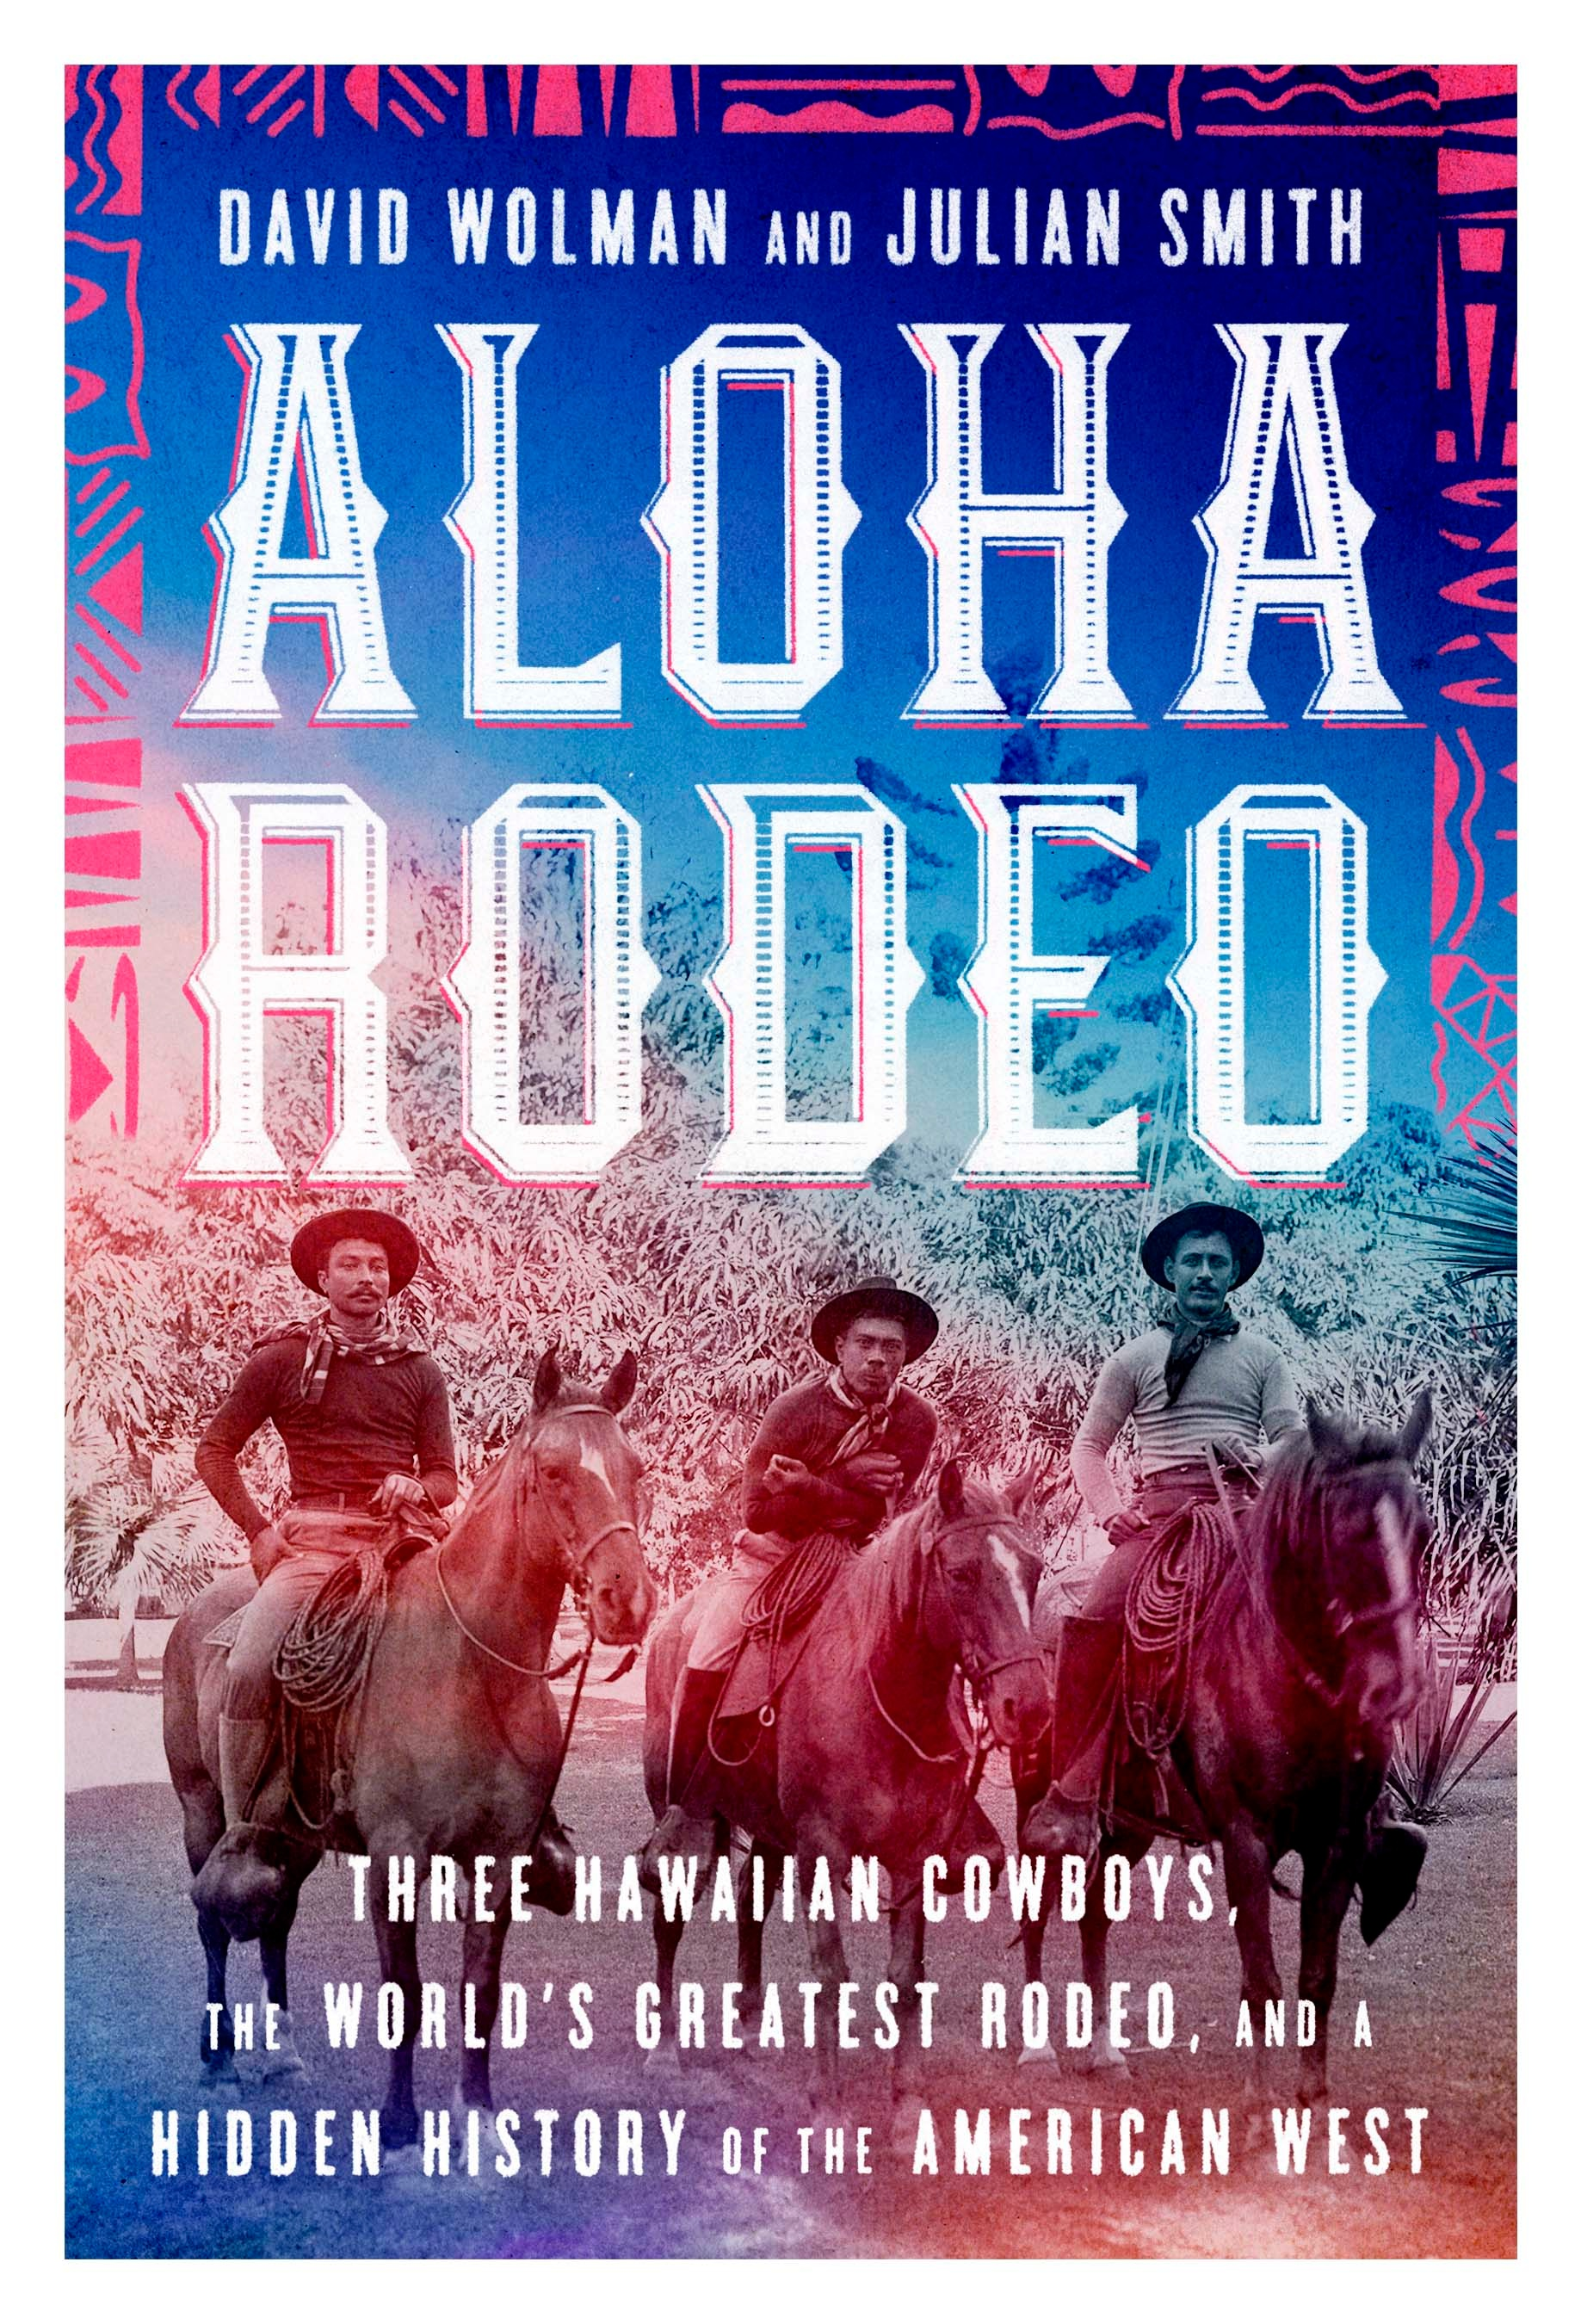 Aloha Rodeo - OUT NOW FROM HARPERCOLLINS!In August 1908, three unknown riders arrived in Cheyenne, Wyoming, their hats adorned with wildflowers, to compete in the world's greatest rodeo. Steer-roping virtuoso Ikua Purdy and his cousins Jack Low and Archie Ka'au'a had travelled 3,000 miles from Hawaii, of all places, to test themselves against the toughest riders in the West.Dismissed by whites, who considered themselves the only true cowboys, the native Hawaiians would astonish the country, returning home champions—and American legends. An unforgettable human drama set against the rough-knuckled frontier, Aloha Rodeo unspools the fascinating and little-known true story of the Hawaiian cowboys, or paniolo, whose 1908 adventure upended the conventional history of the American West.